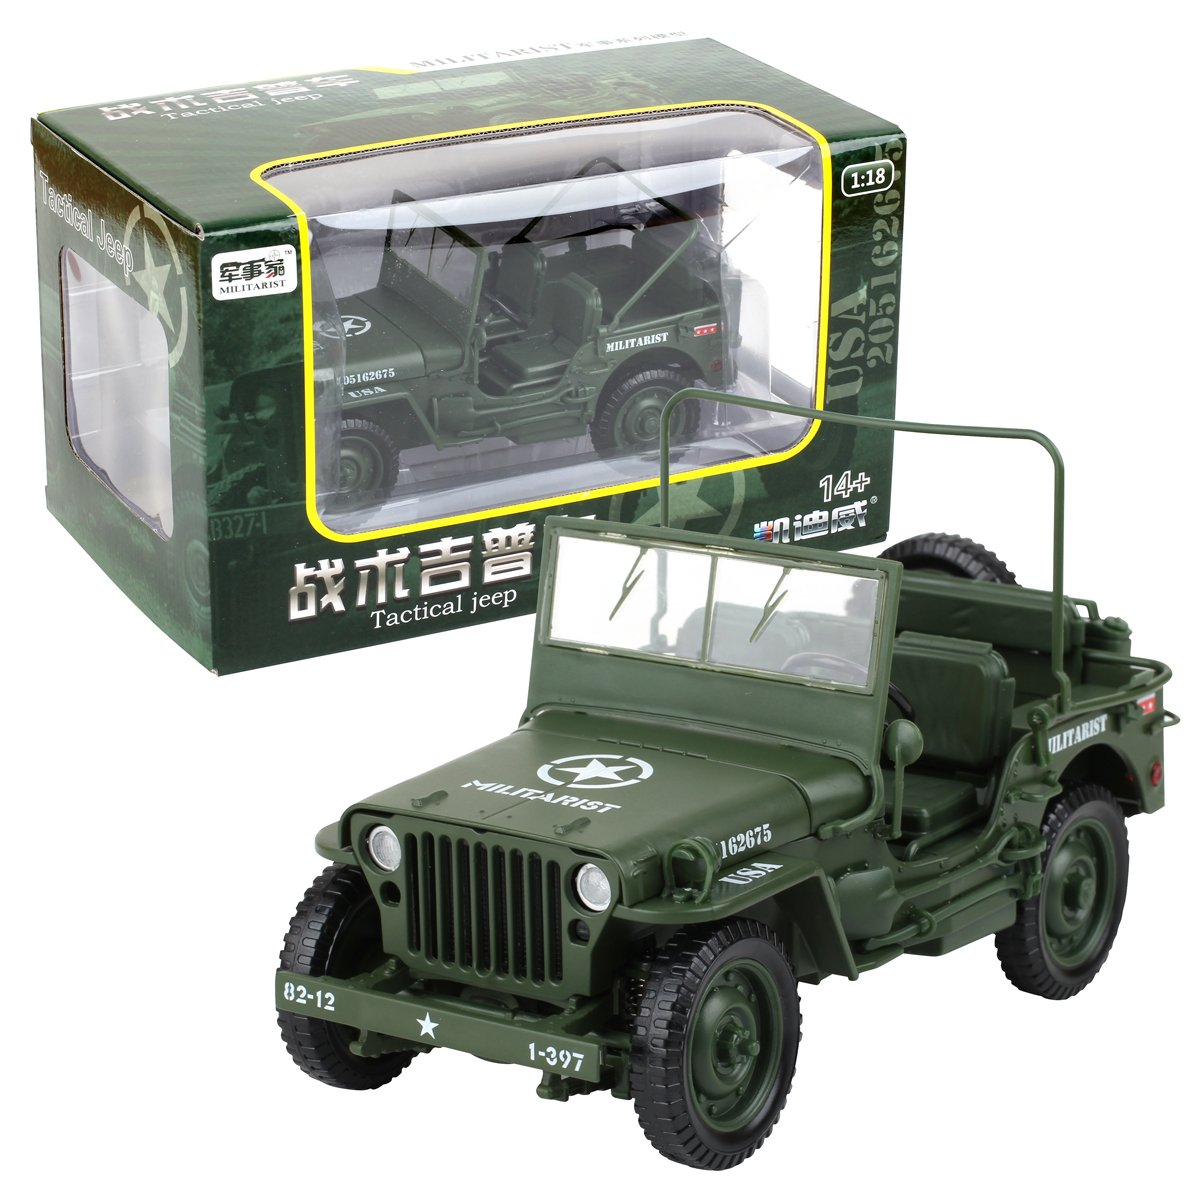 Kaidiwei 1 18 Scale Diecast Model Willys Jeep Military Jeeps On Filter Box Us Army Vehicle Toys Games